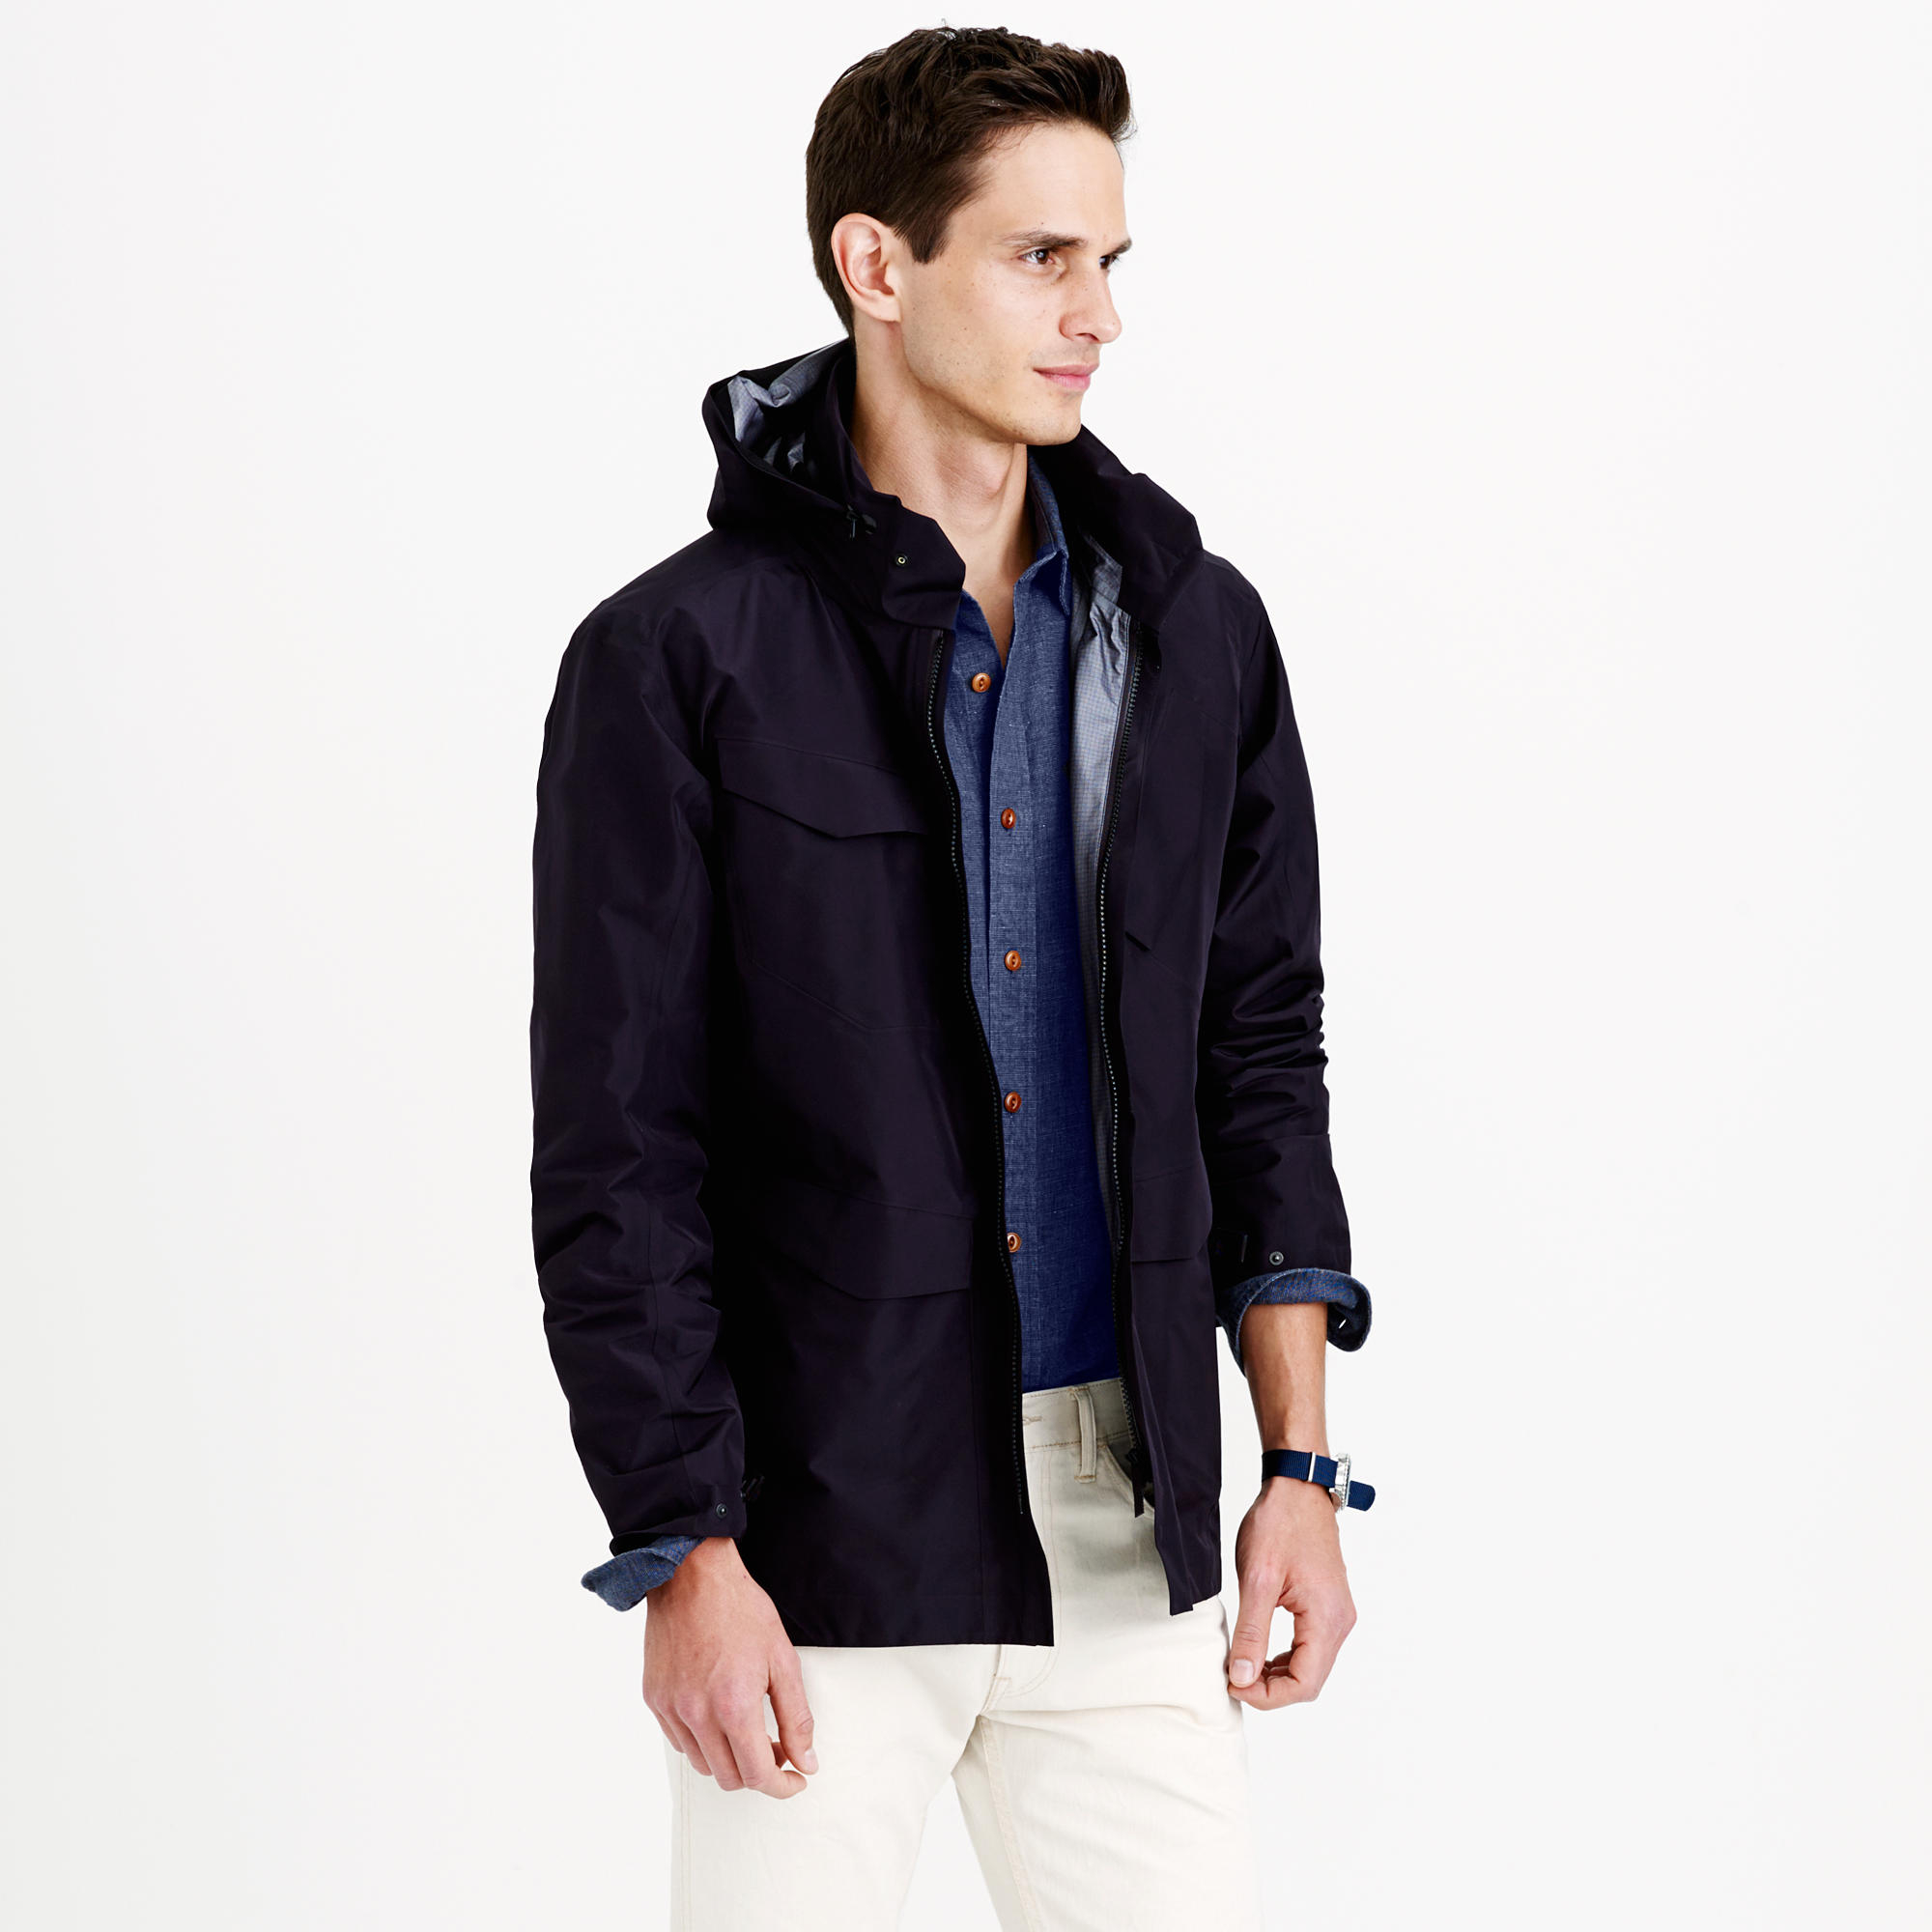 J Crew Arc Teryx Veilance Field Lt Jacket In Black For Men